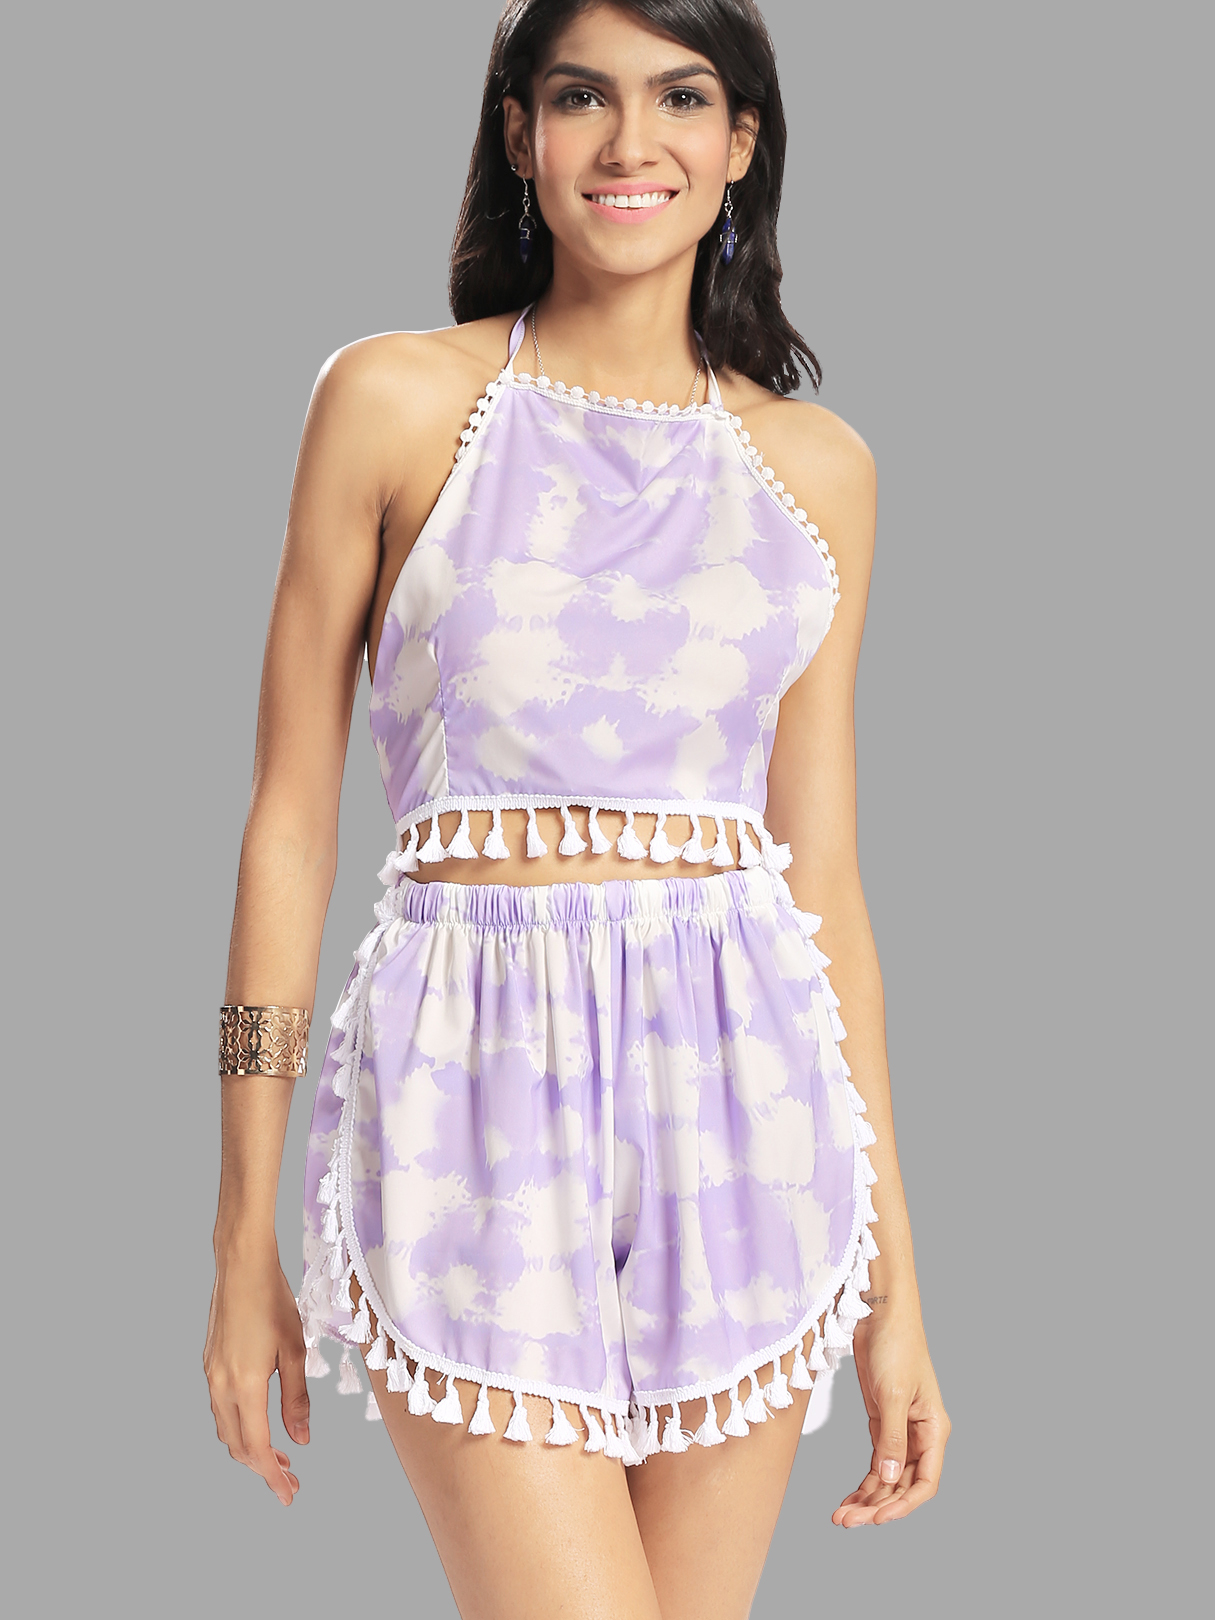 Fantasy Colour Pattern Self-tie Crop Top & Sides Slit Co-ord with Tassels Trim